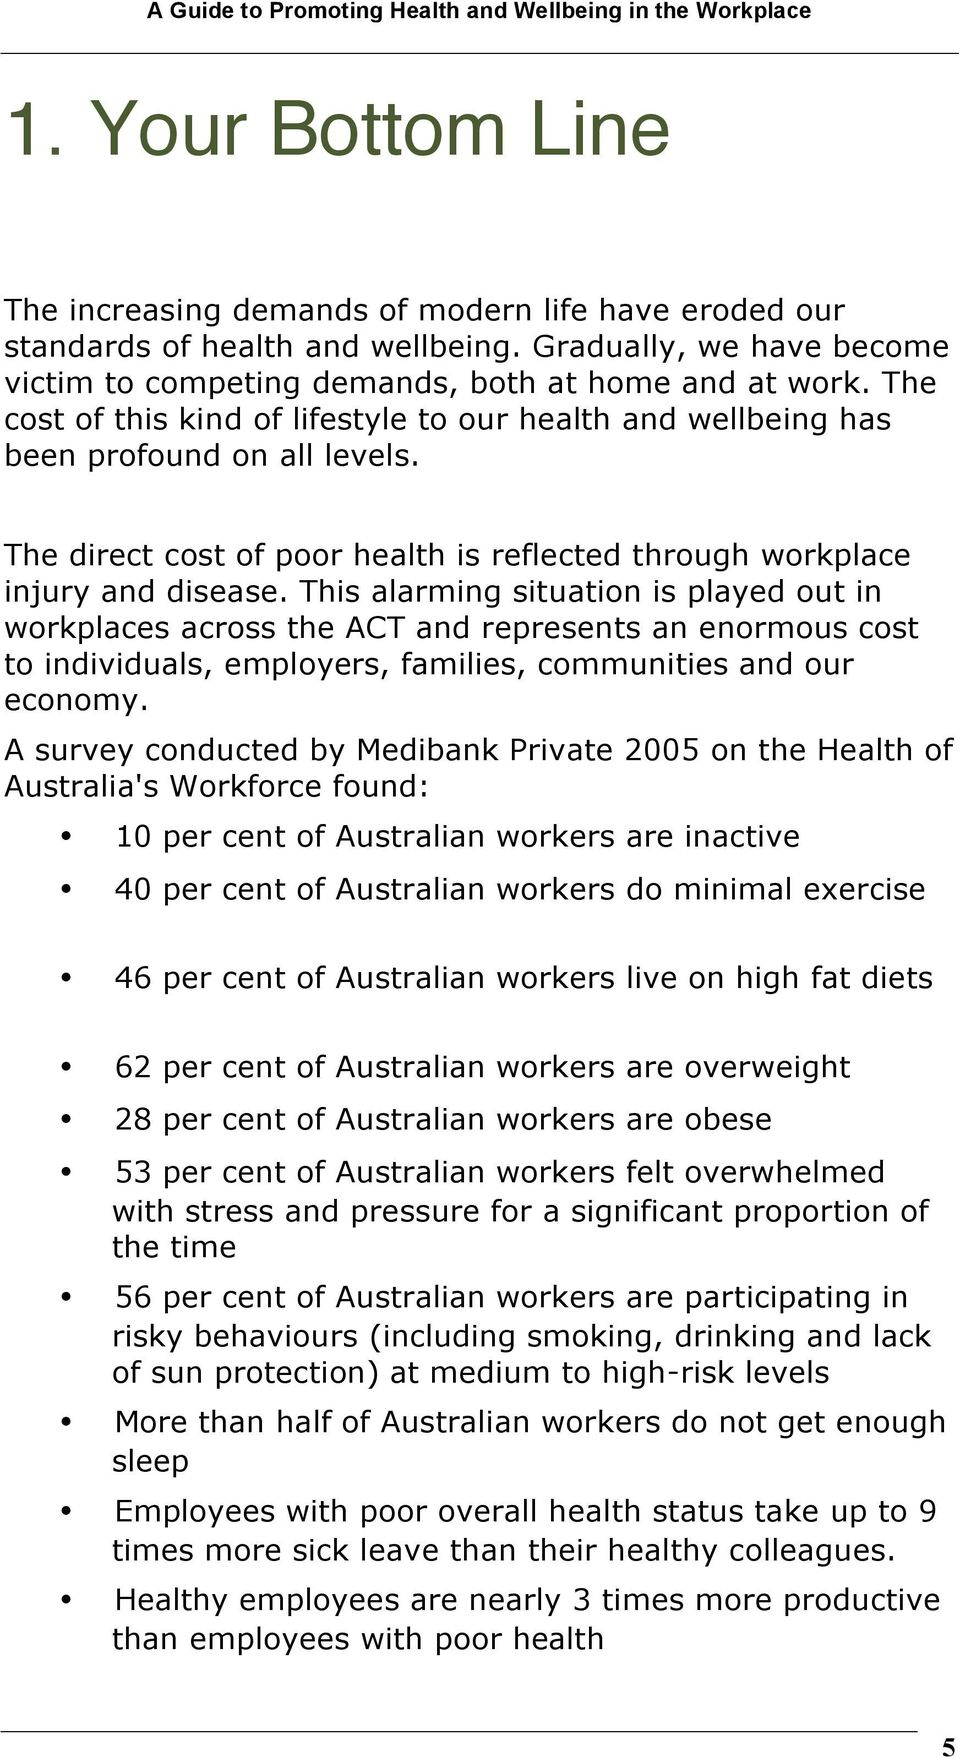 This alarming situation is played out in workplaces across the ACT and represents an enormous cost to individuals, employers, families, communities and our economy.